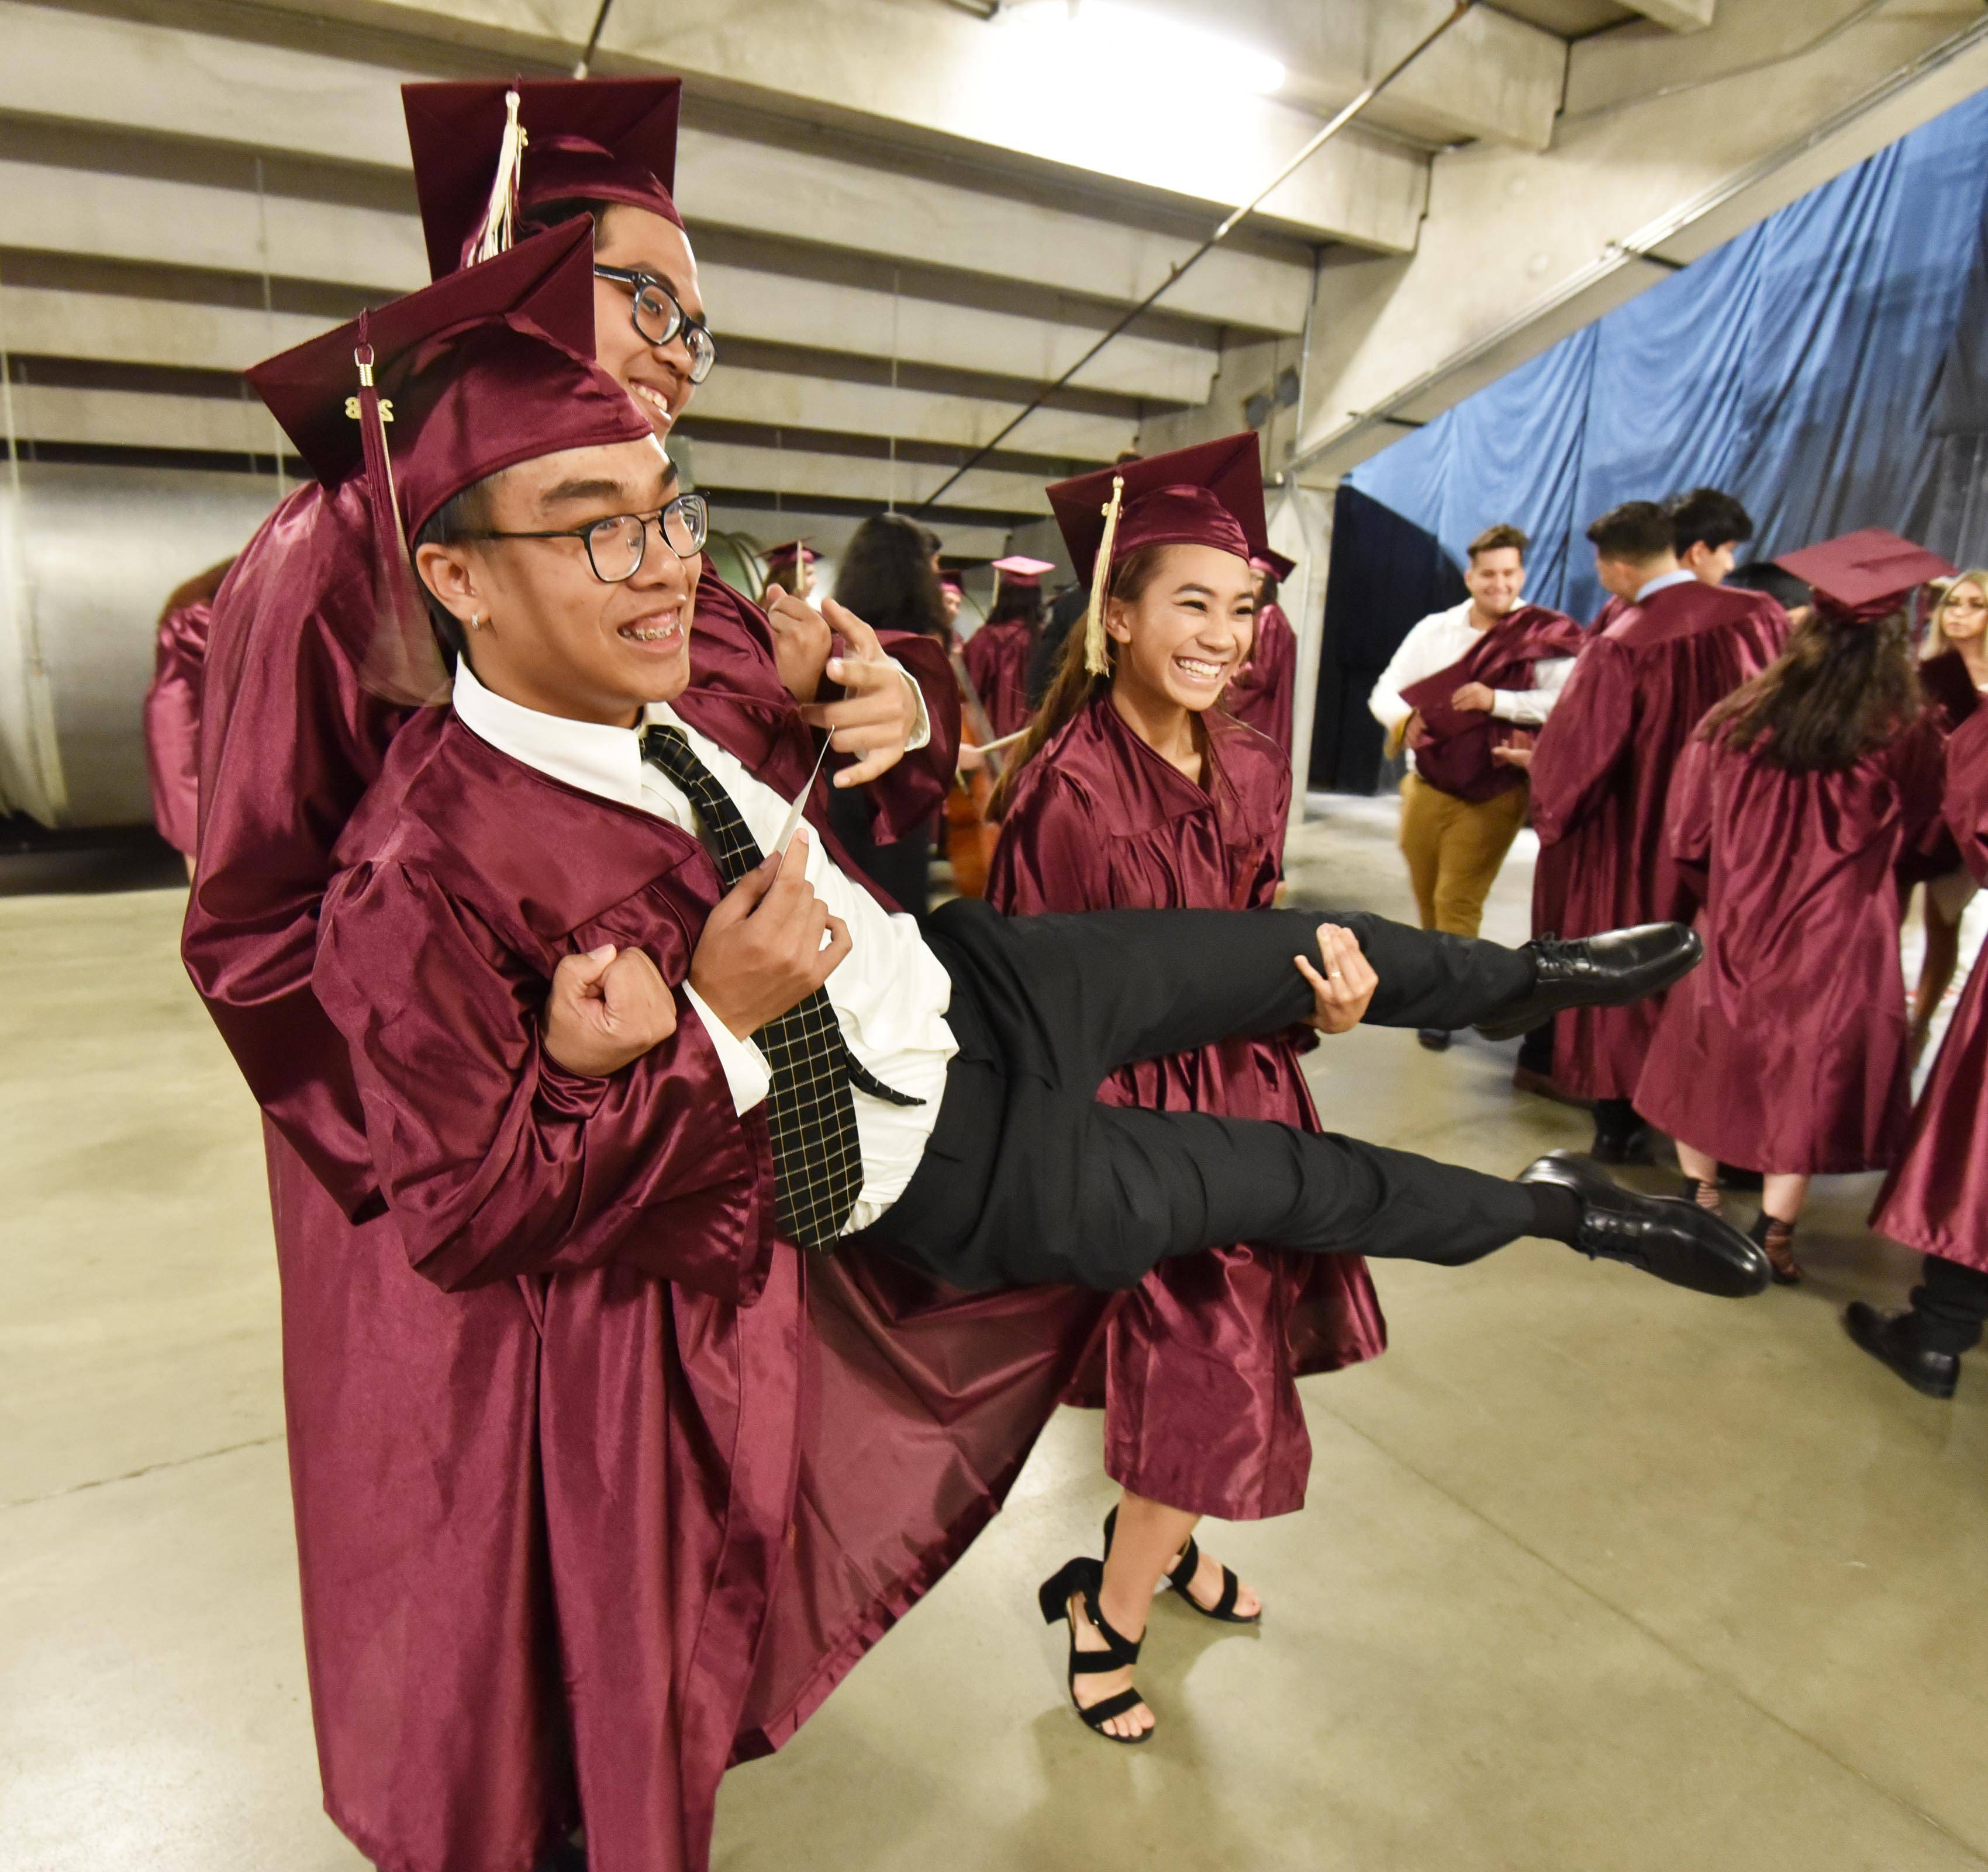 Drake Phamanivong is lifted by fellow graduates Matthew Pettineo and Rachel Phimmavong as Kacy Perfors takes their photo before the Elgin High School graduation ceremony Saturday at the Sears Centre in Hoffman Estates.